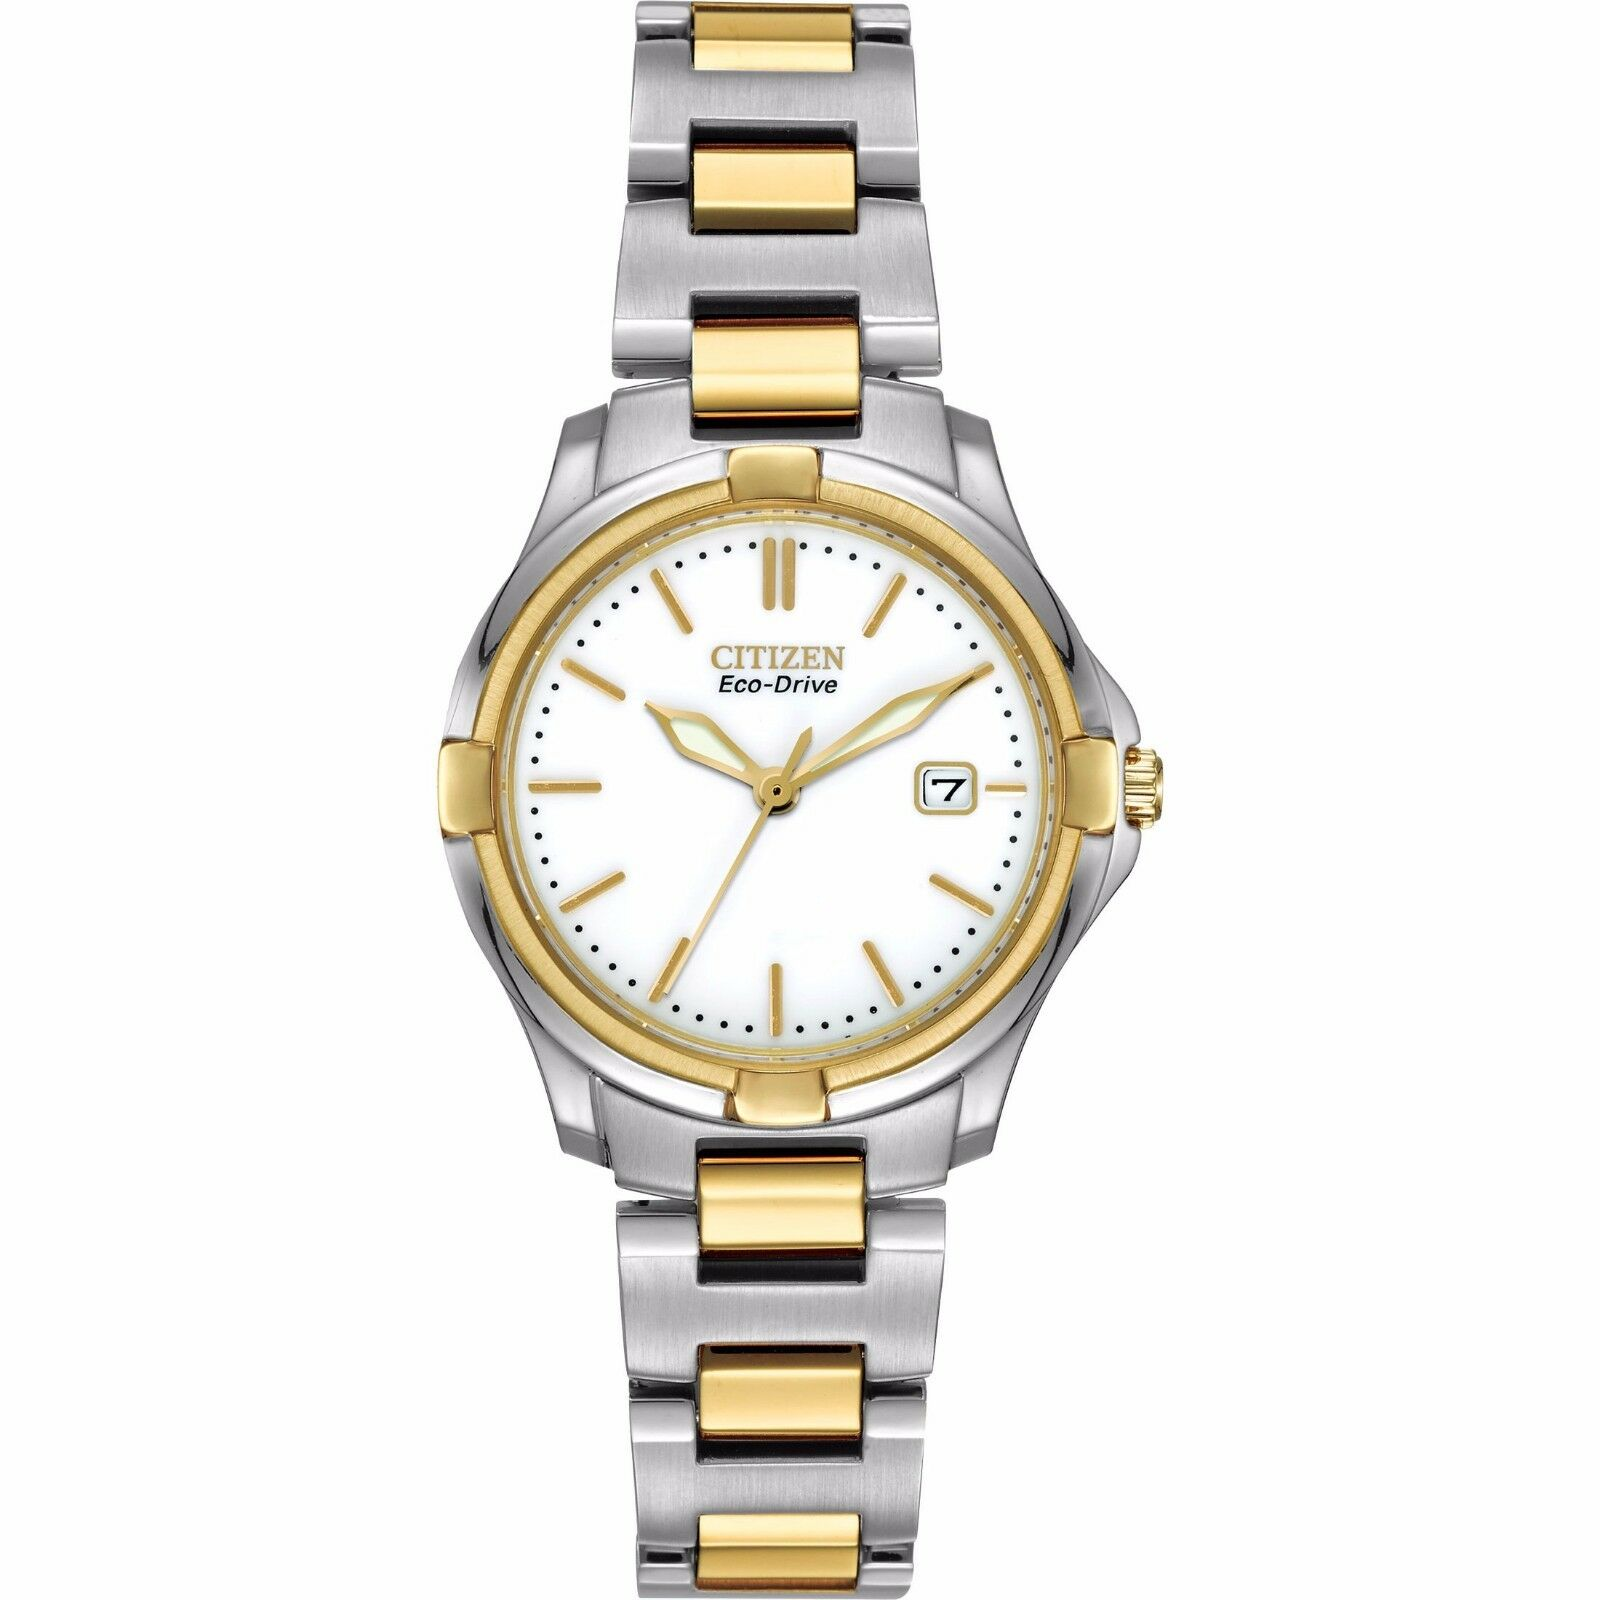 $59.99 - Citizen Eco-Drive Women's EW1964-58A Silhouette Two-Tone Stainless Steel Watch